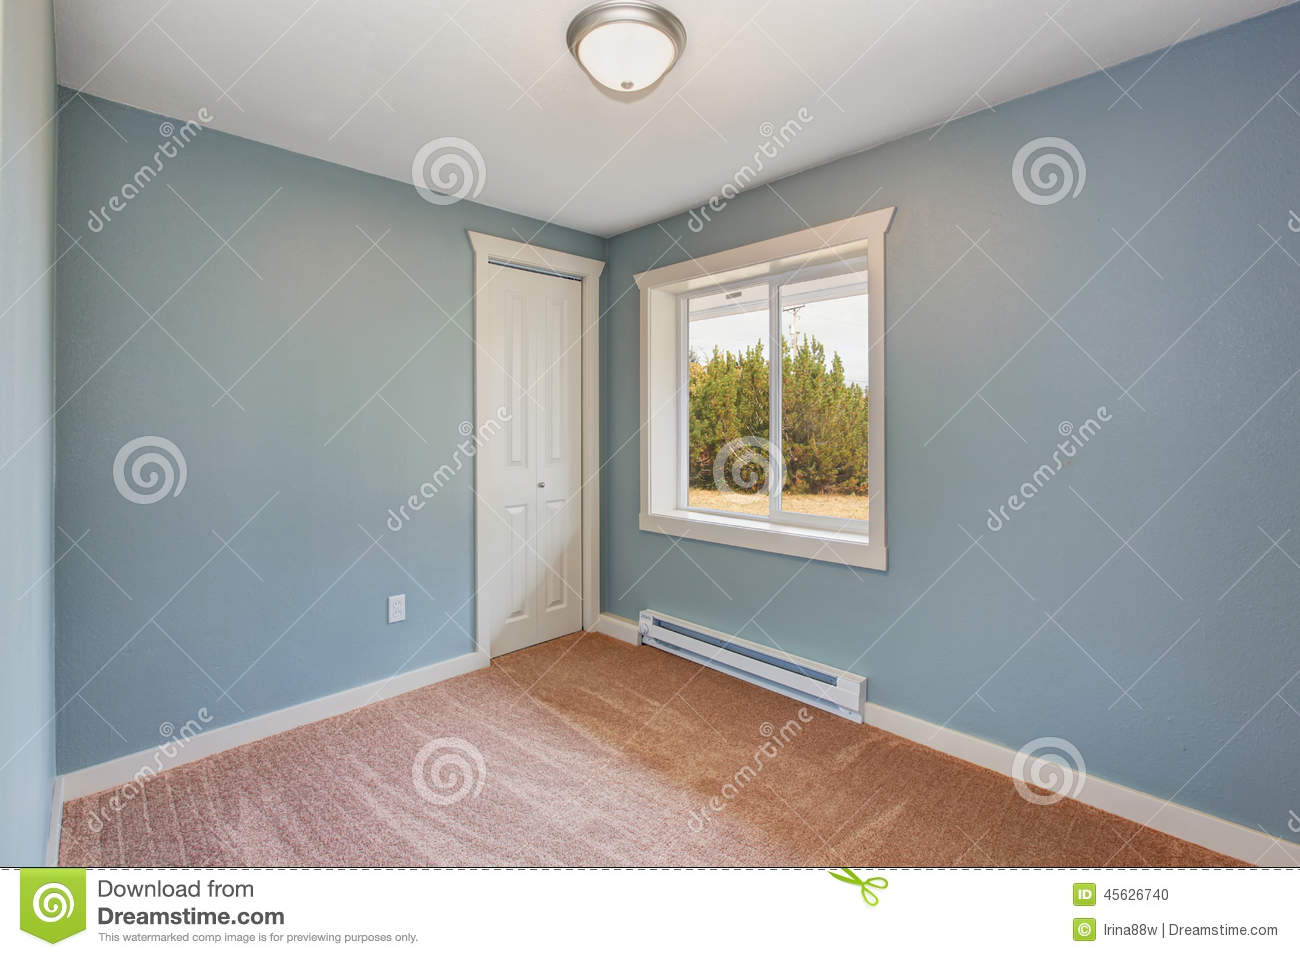 Small Light Blue Bedroom In Empty House Stock Photo - Image: 45626740